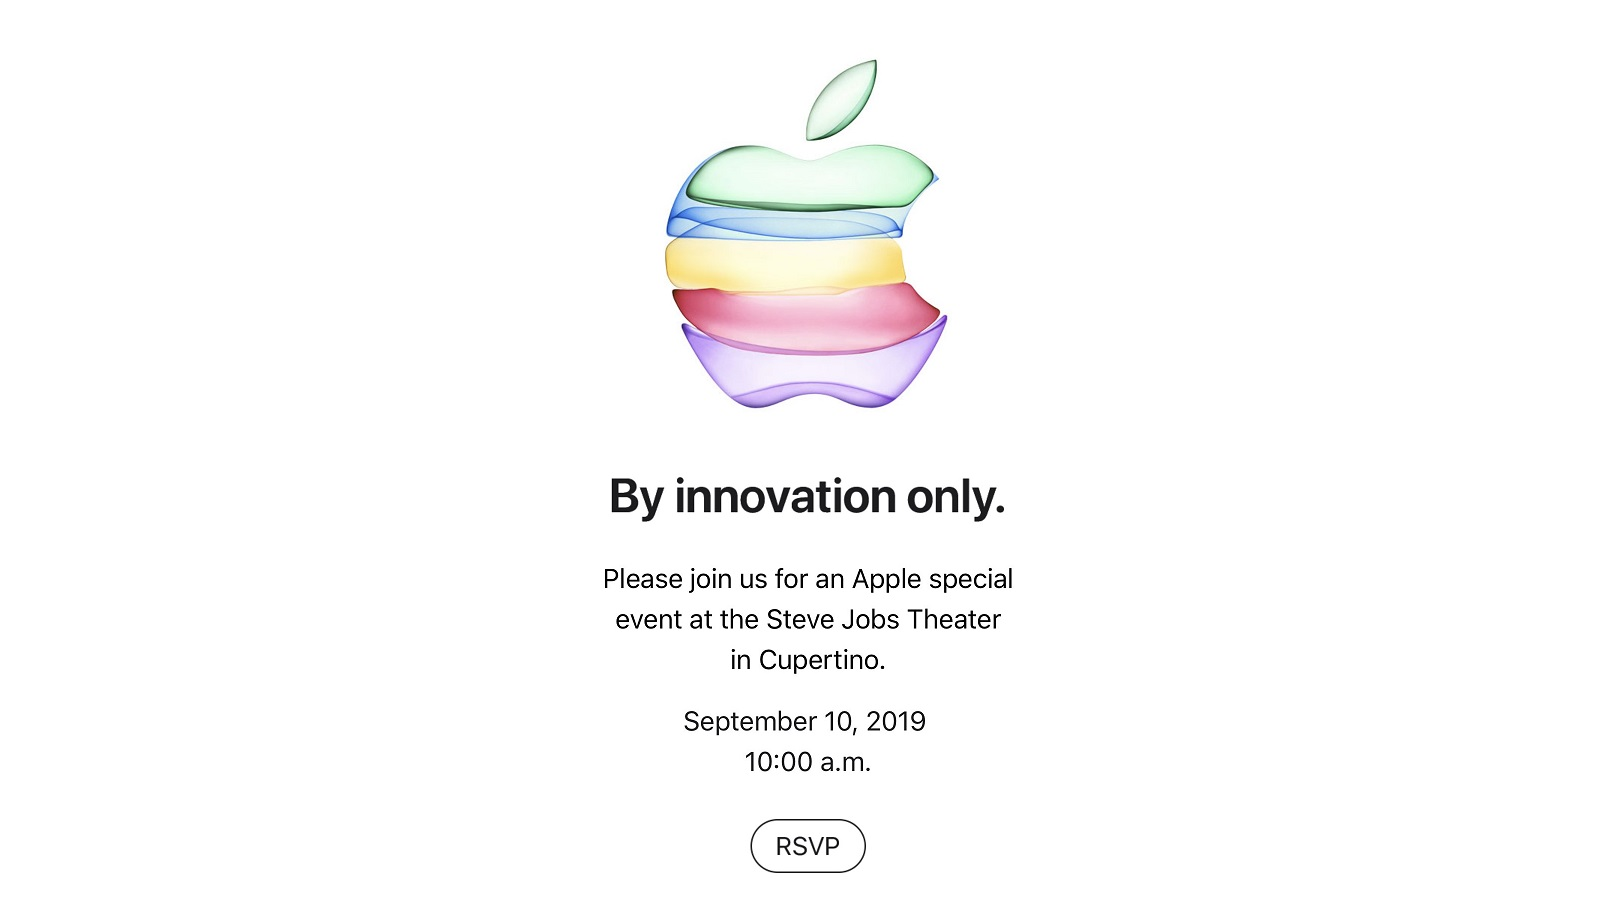 iPhone 11 launch date set for September 10